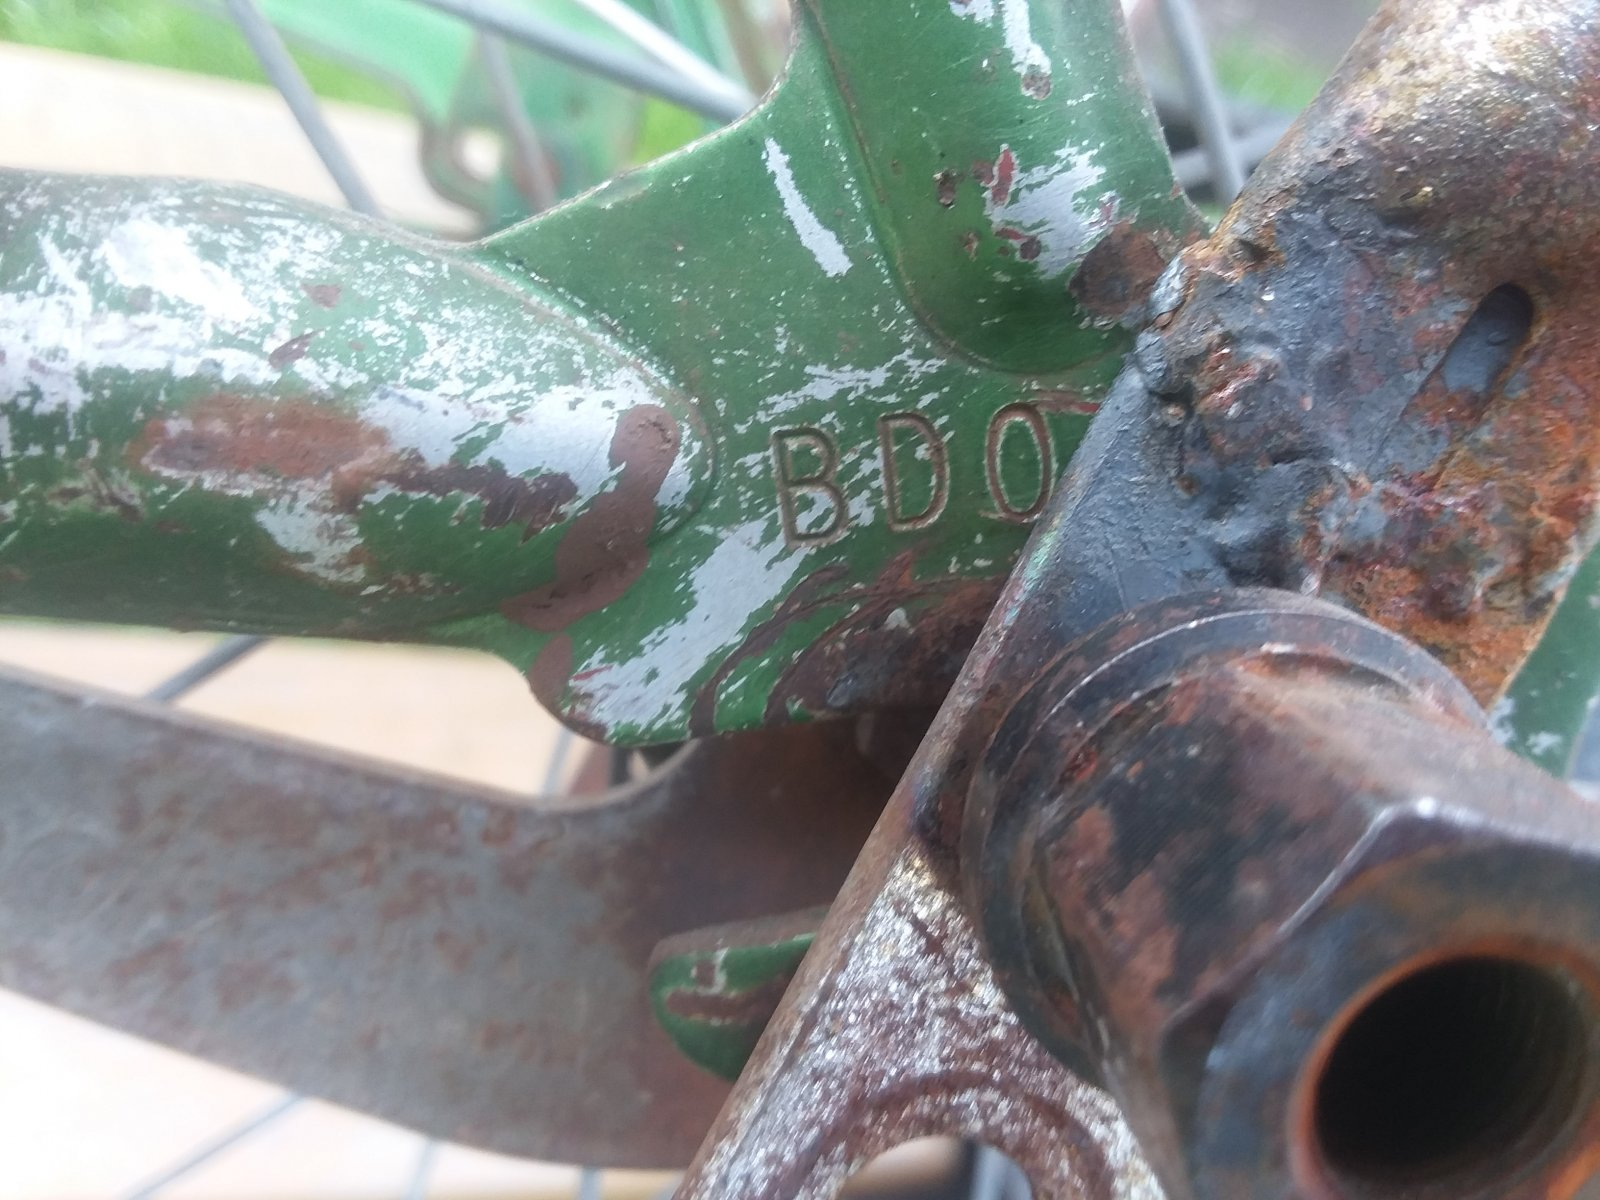 SOLD - =☆ 68 Schwinn Stingray parts ☆= 270 shipped for all